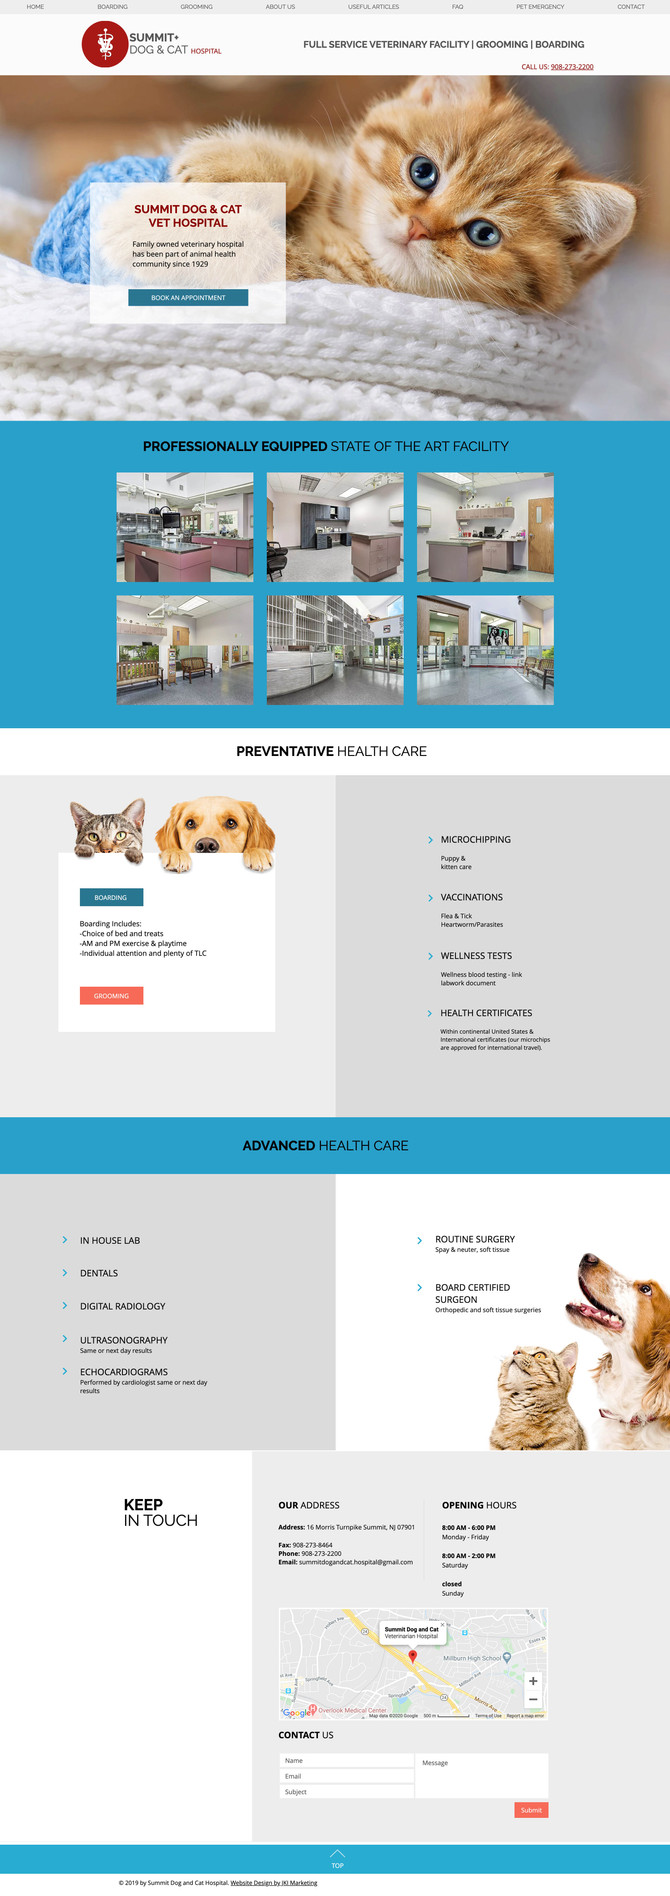 Website Design for Summit Dog & Cat Hospital